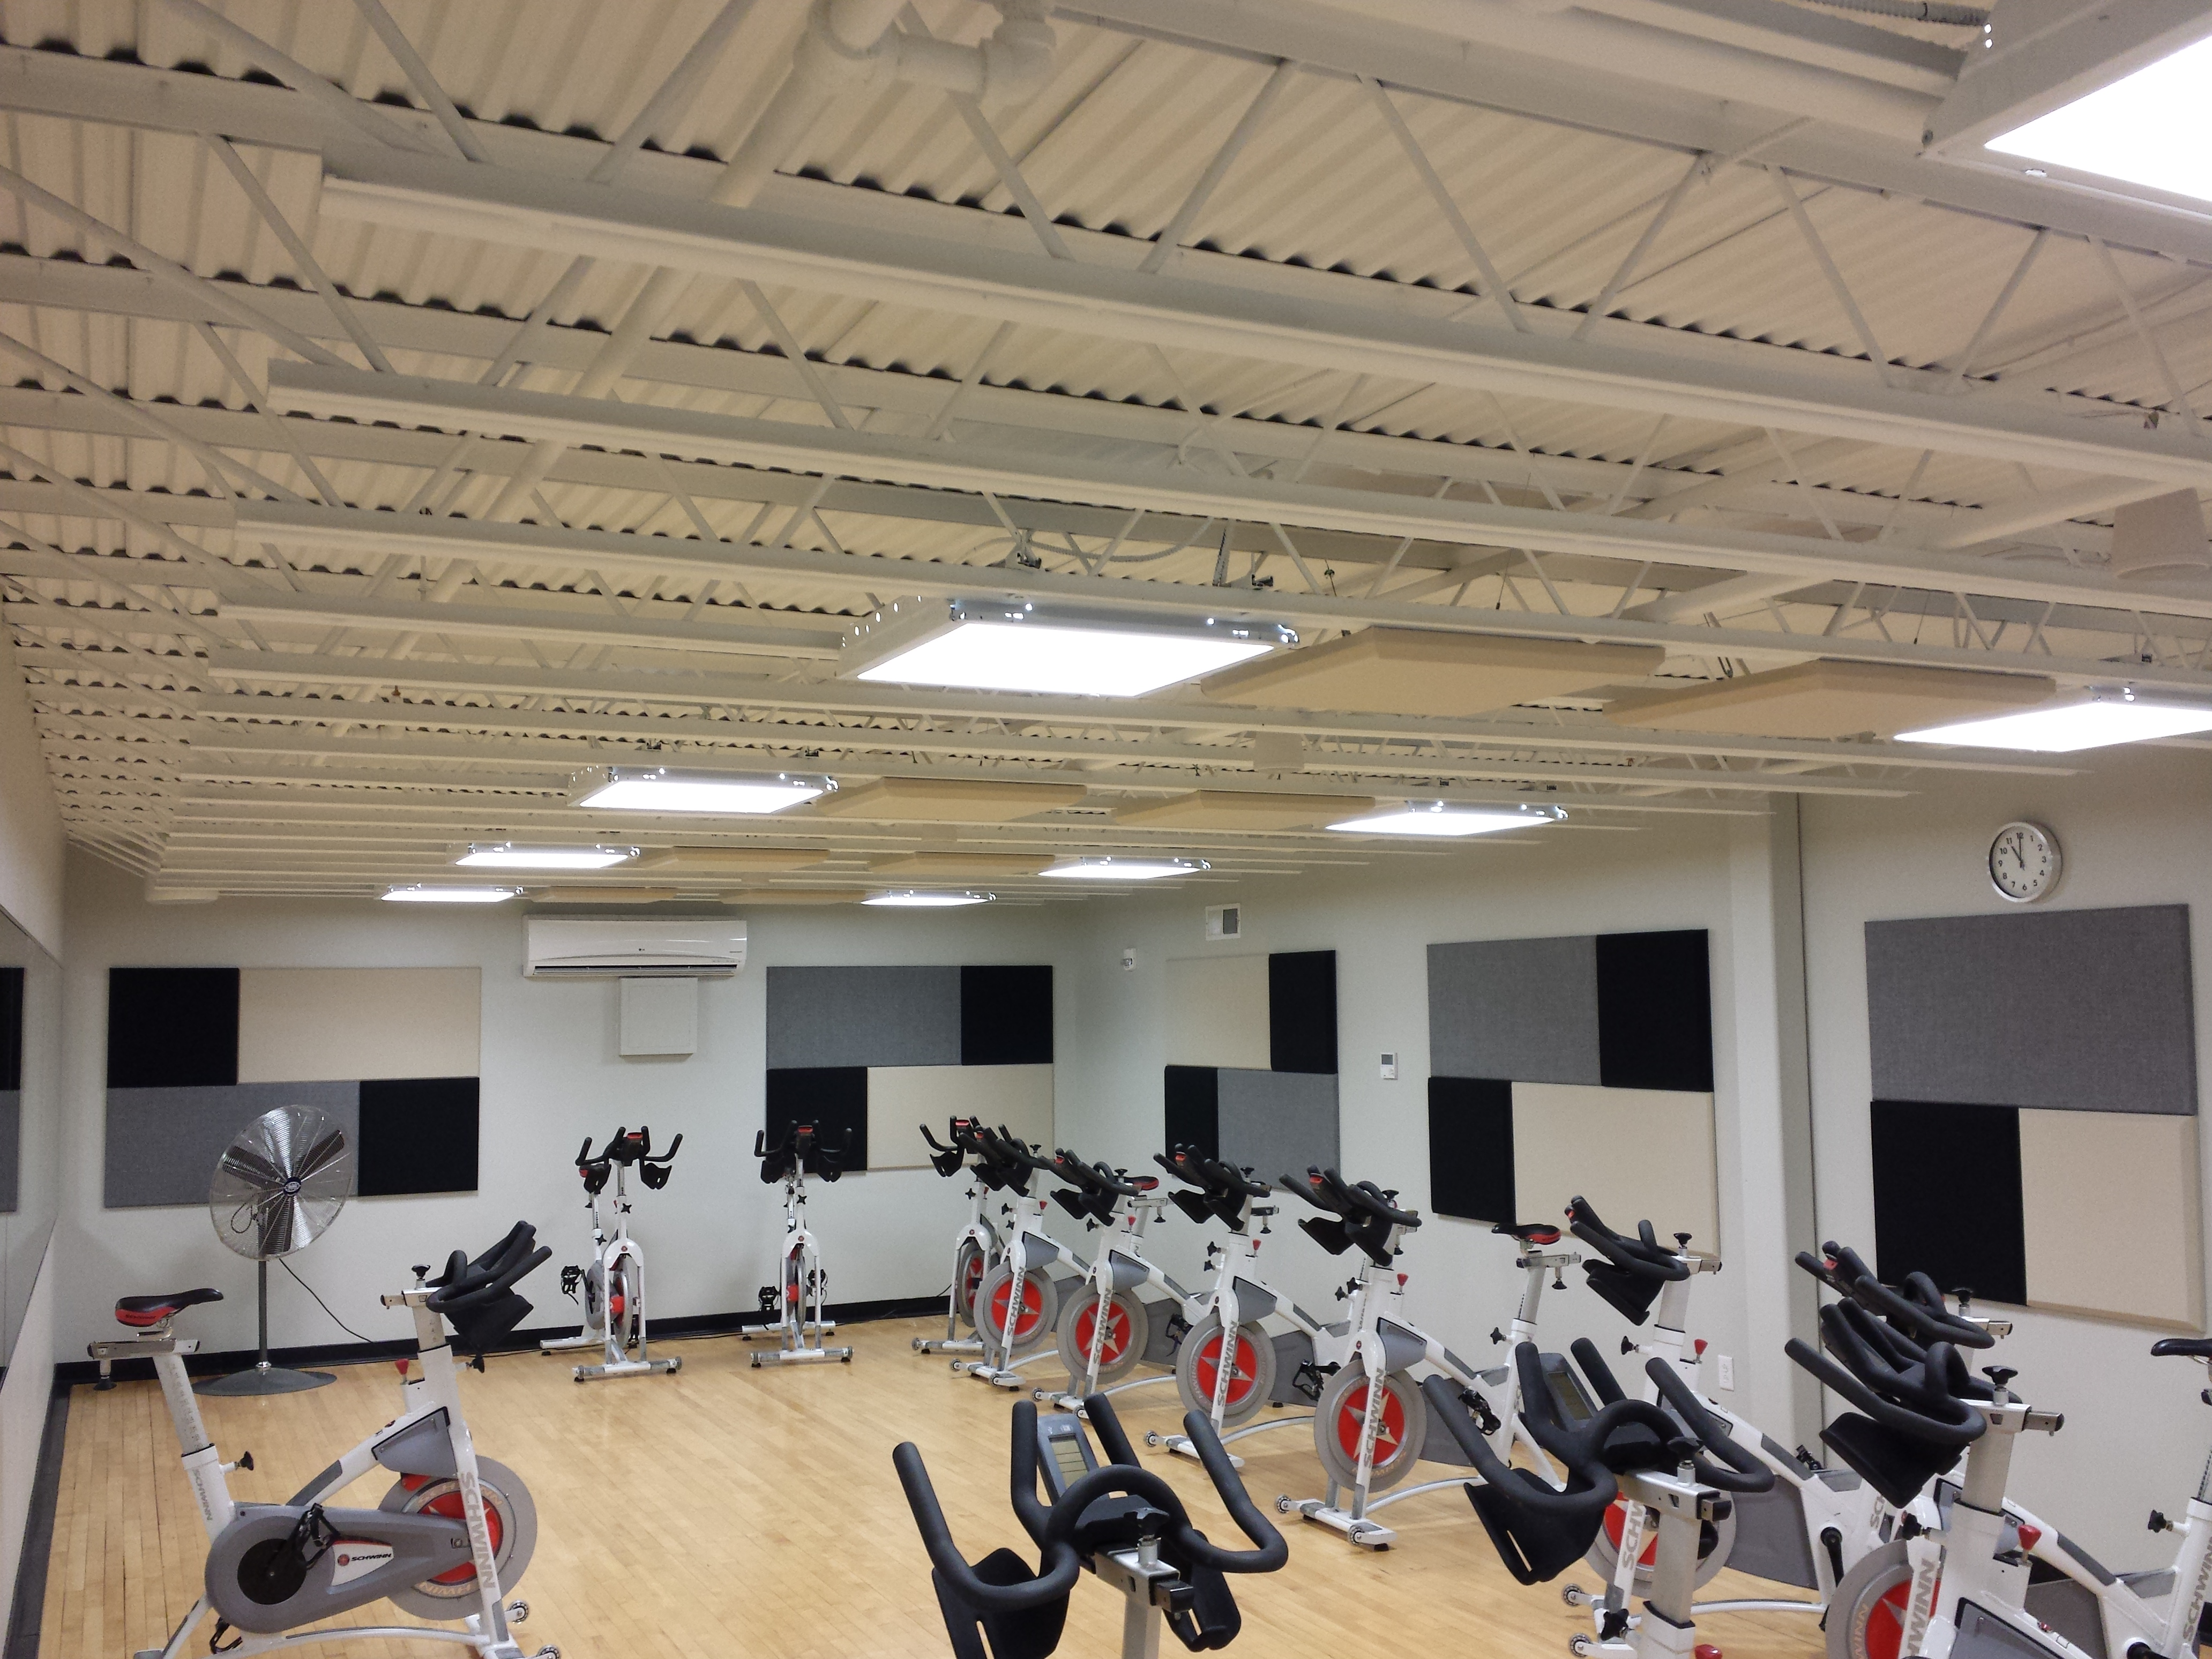 Broadway panels scatterblocks in spin class room